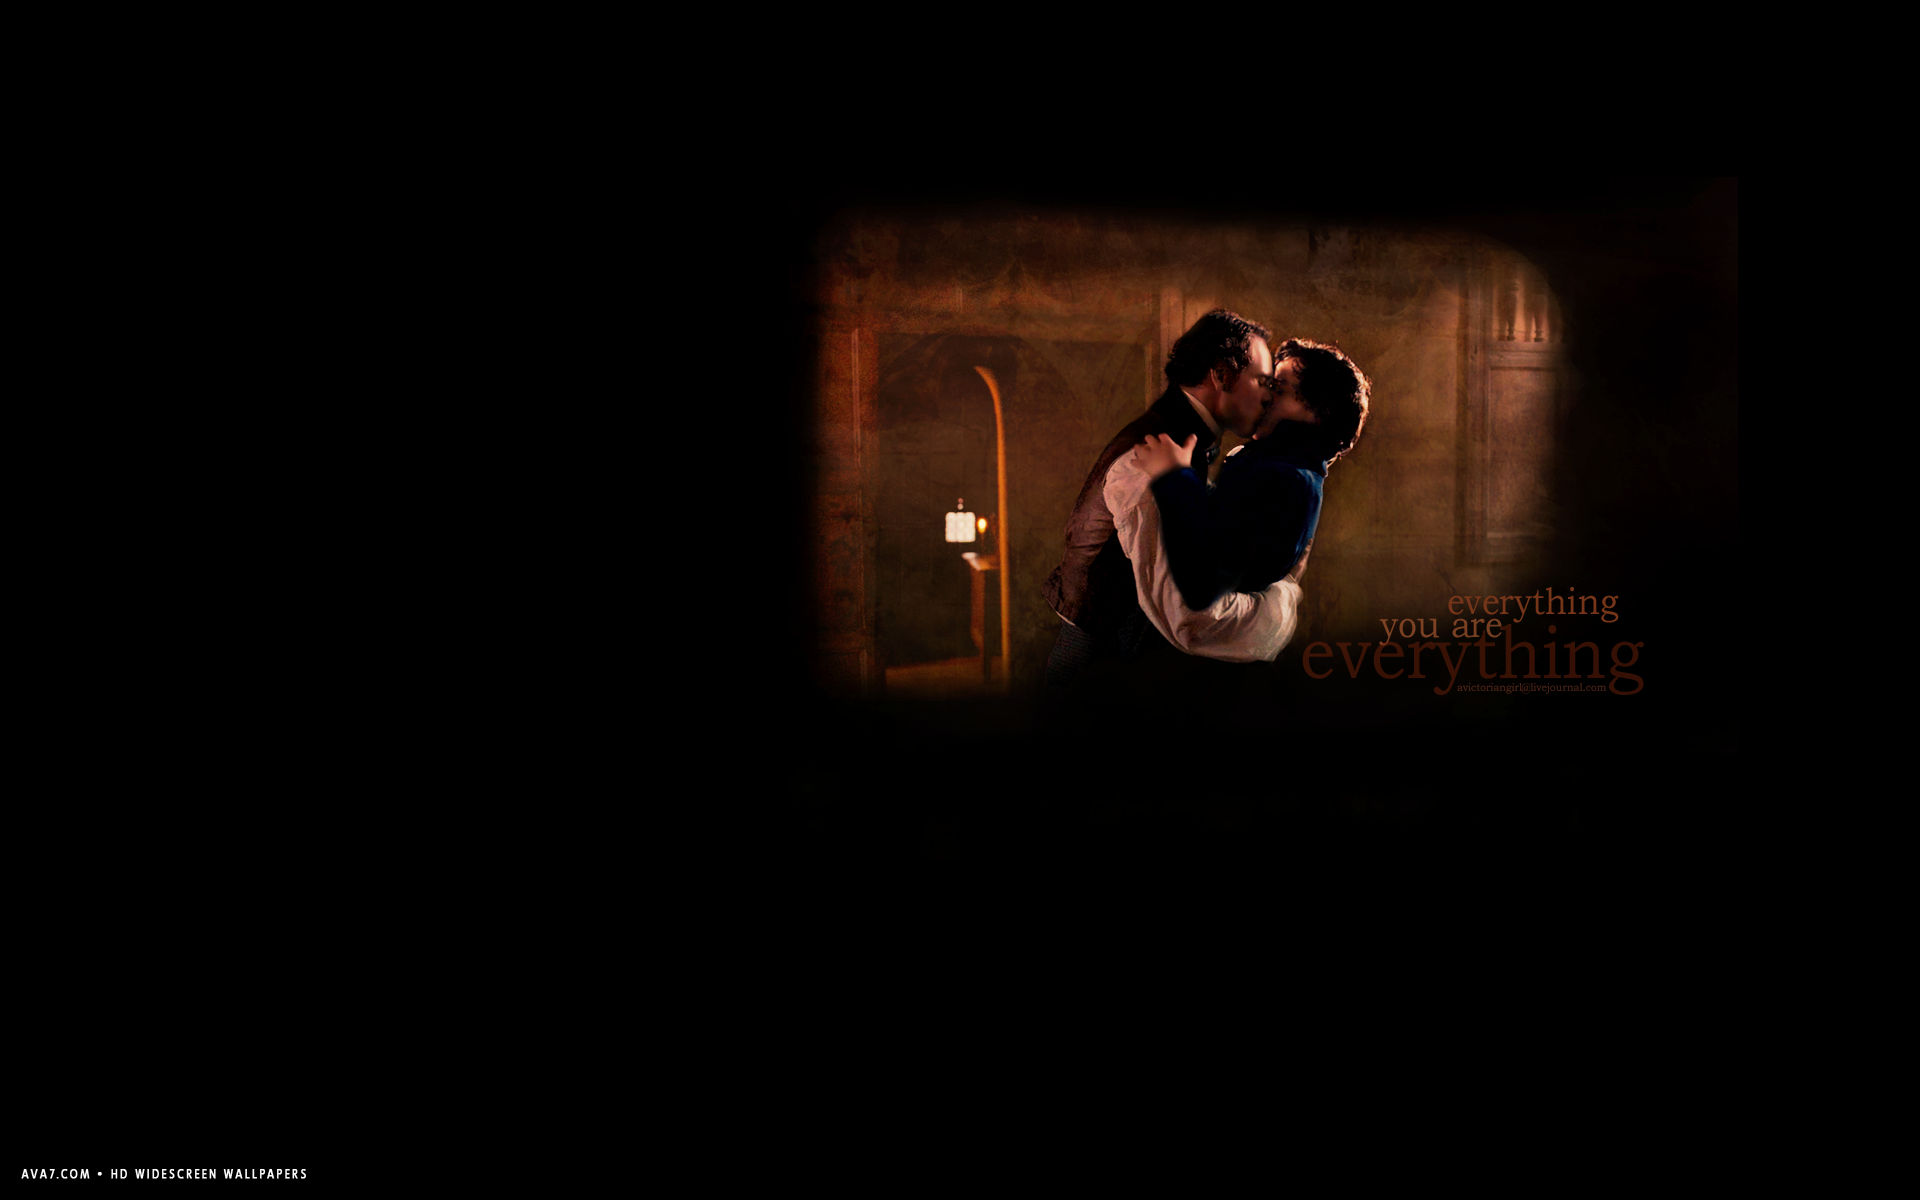 romantic kiss you are everything charles erik x men love hd widescreen wallpaper